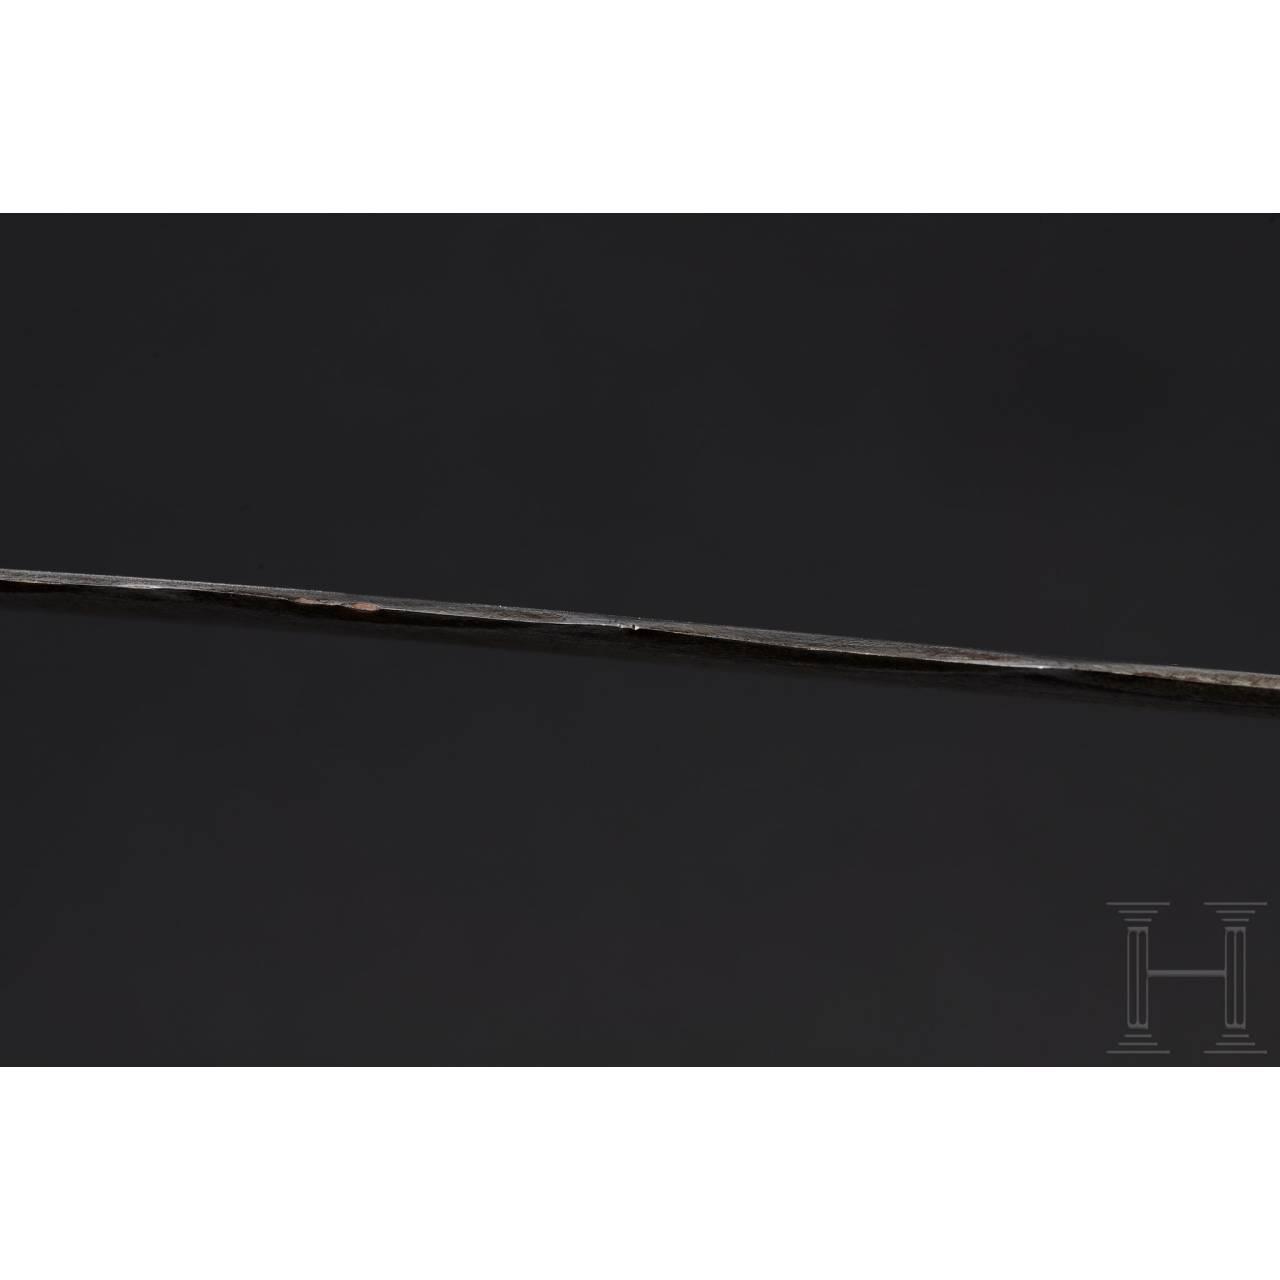 A large South German two-hand flamberge, circa 1580